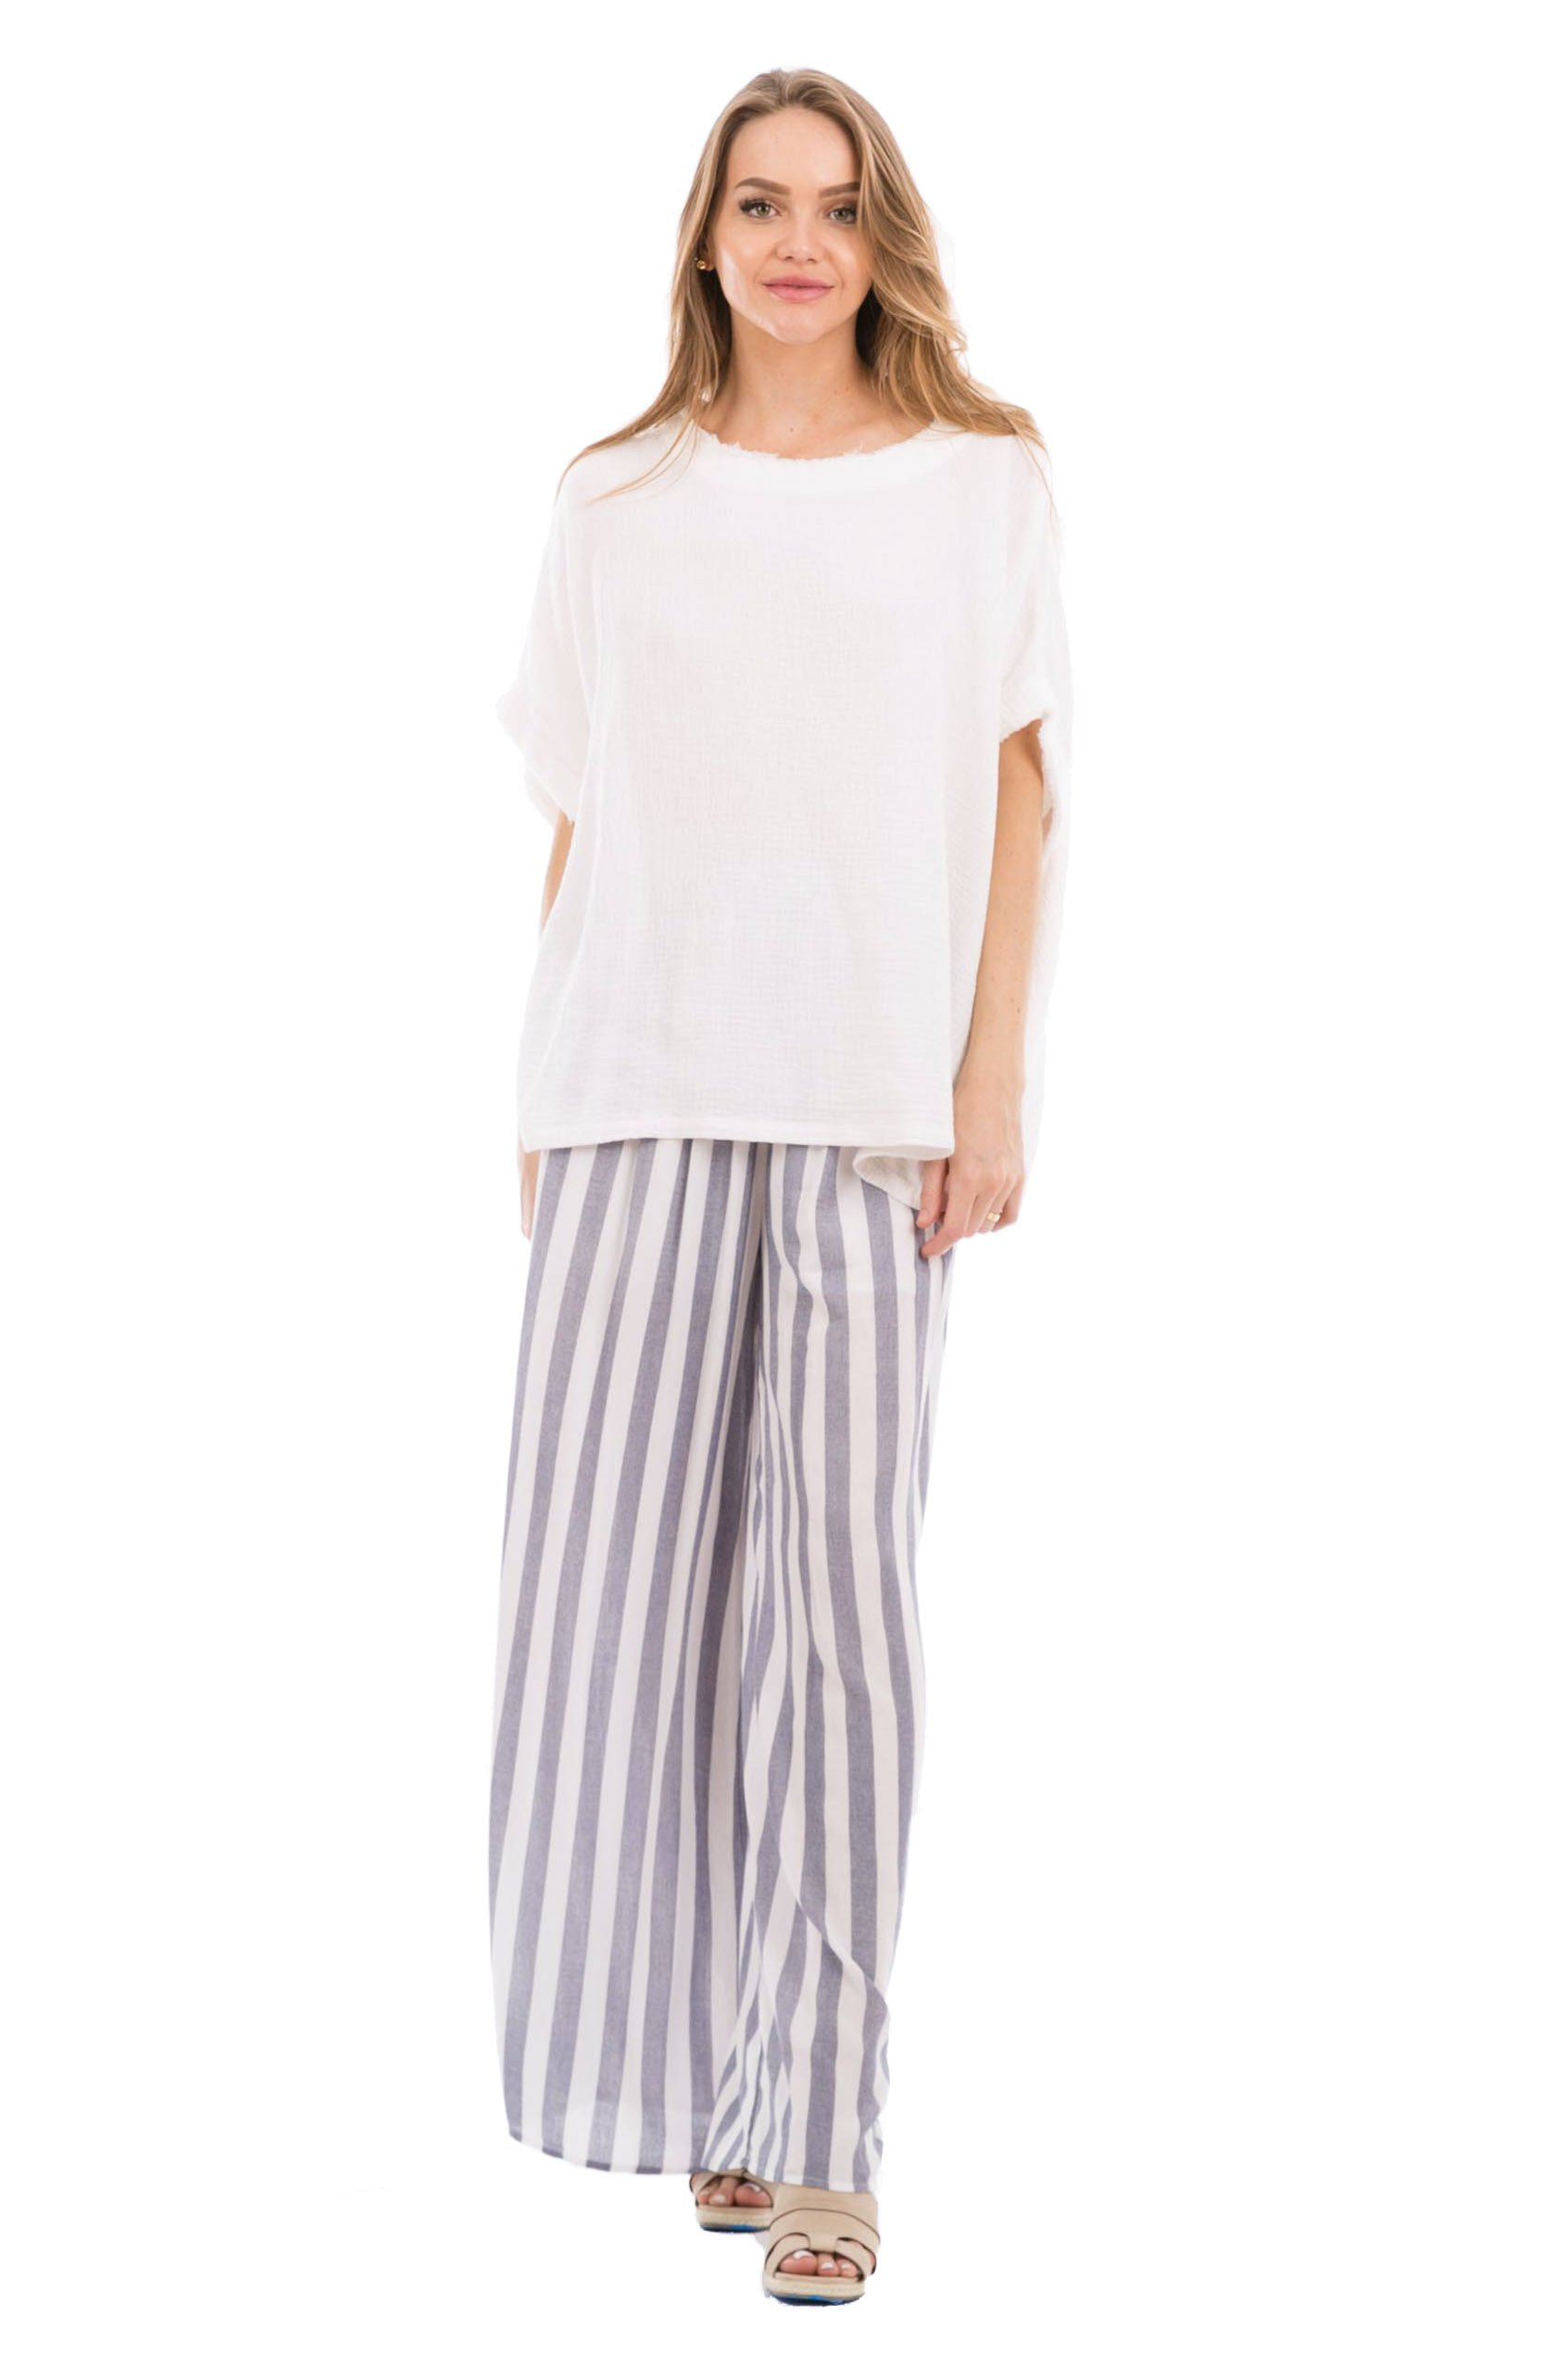 Love In P70010 Wide Leg Striped Pants with Pockets Navy/White M